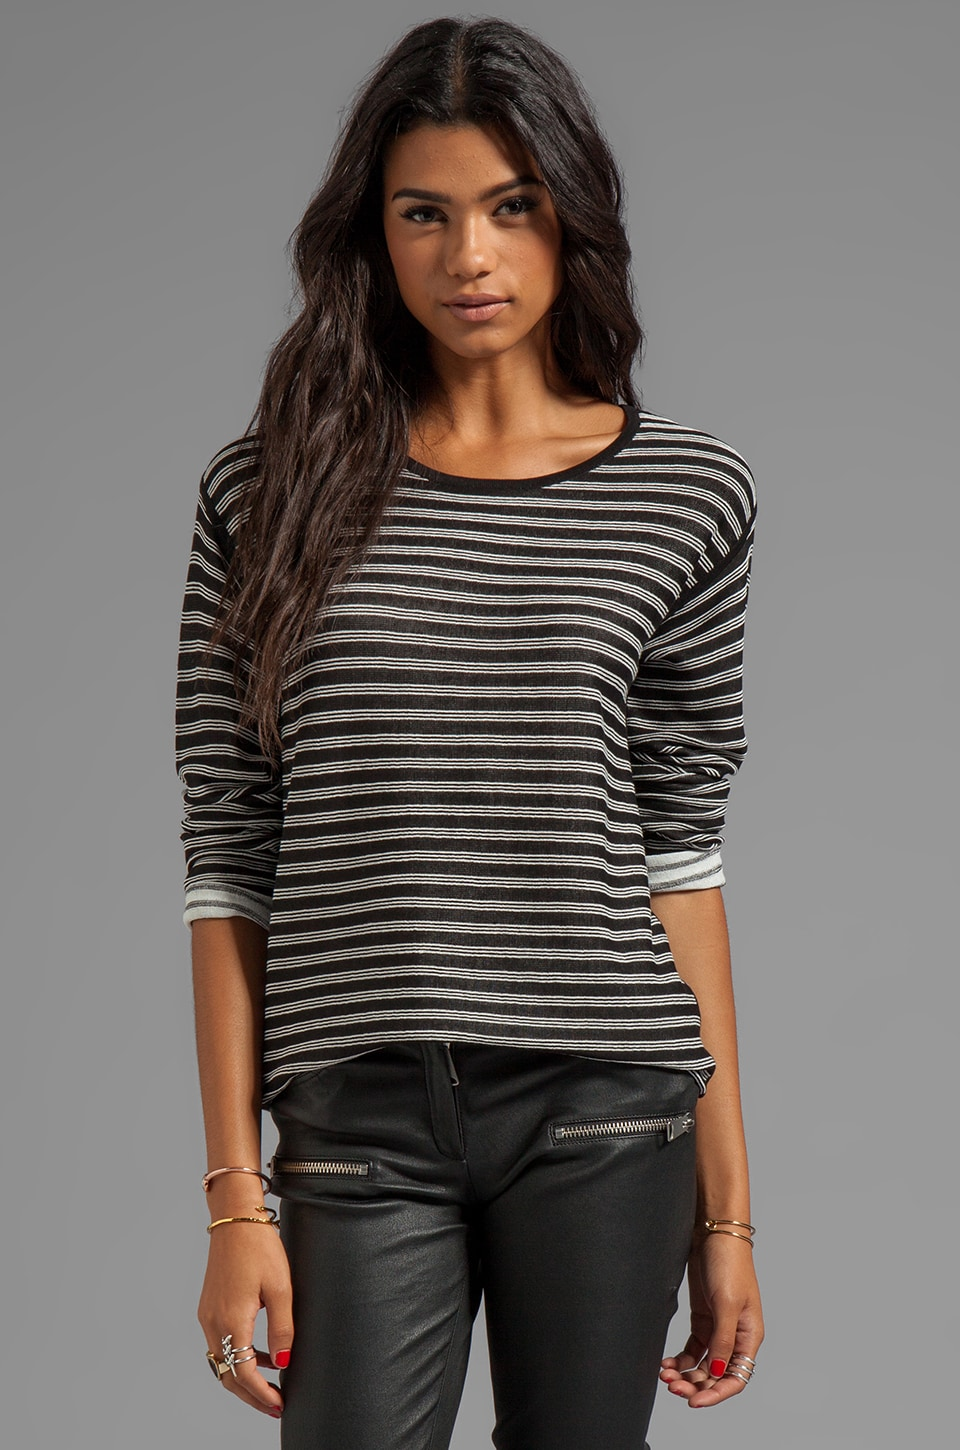 T by Alexander Wang Stripe Knit Long Sleeve Top in Black/White